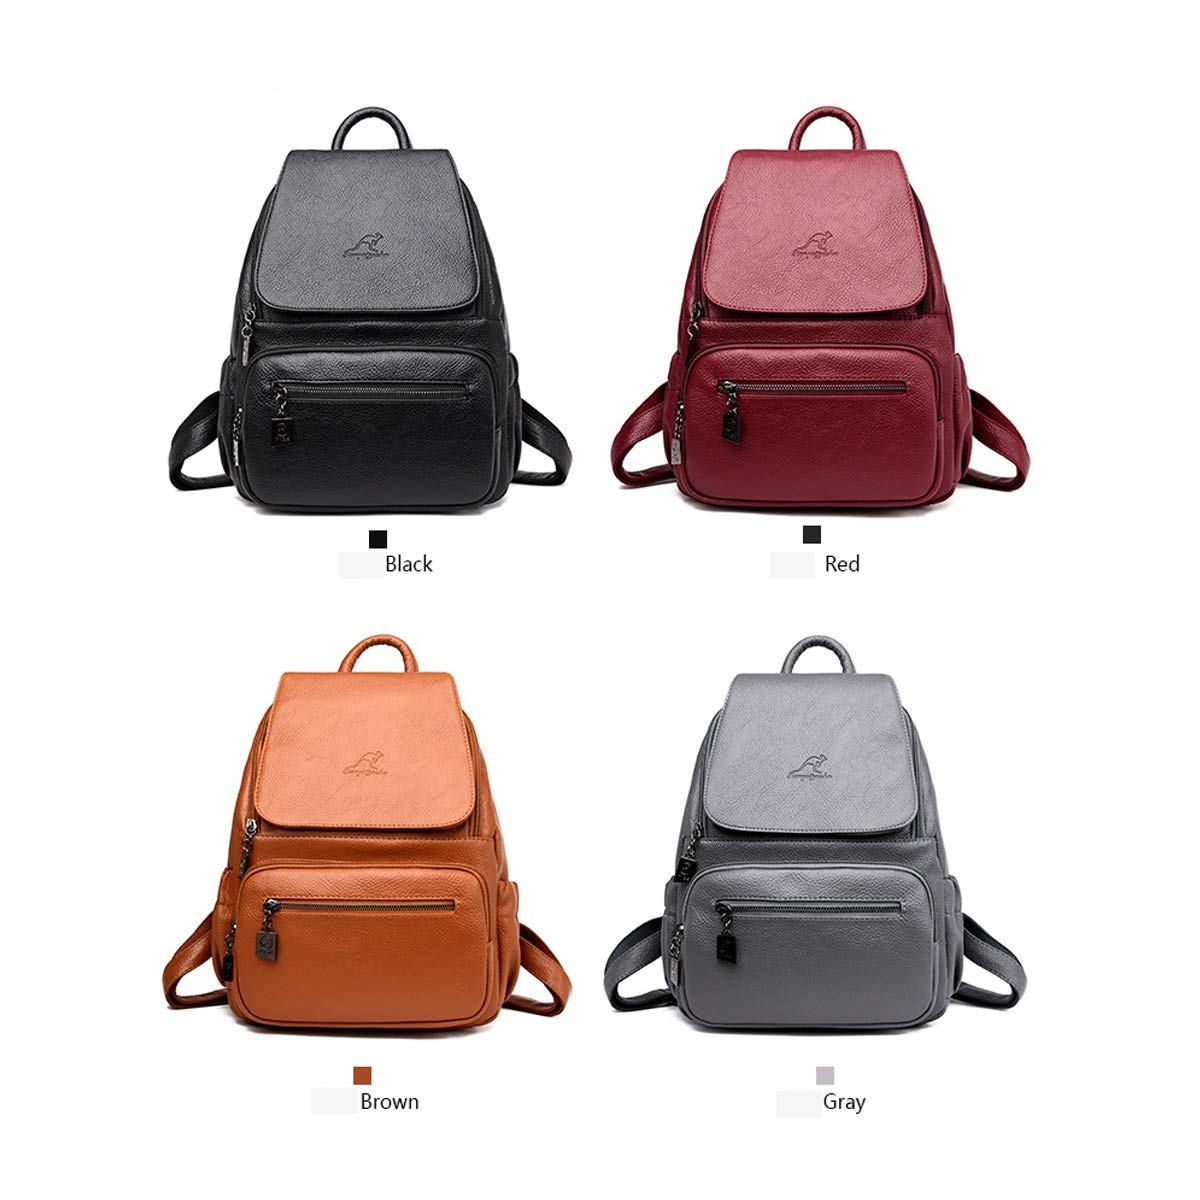 Black//Gray//Red//Brown Haoyushangmao Girls Multifunctional Backpack for Daily Travel//Outdoor//Travel//School//Work//Fashion//Leisure Simple and Stylish. PU Leather